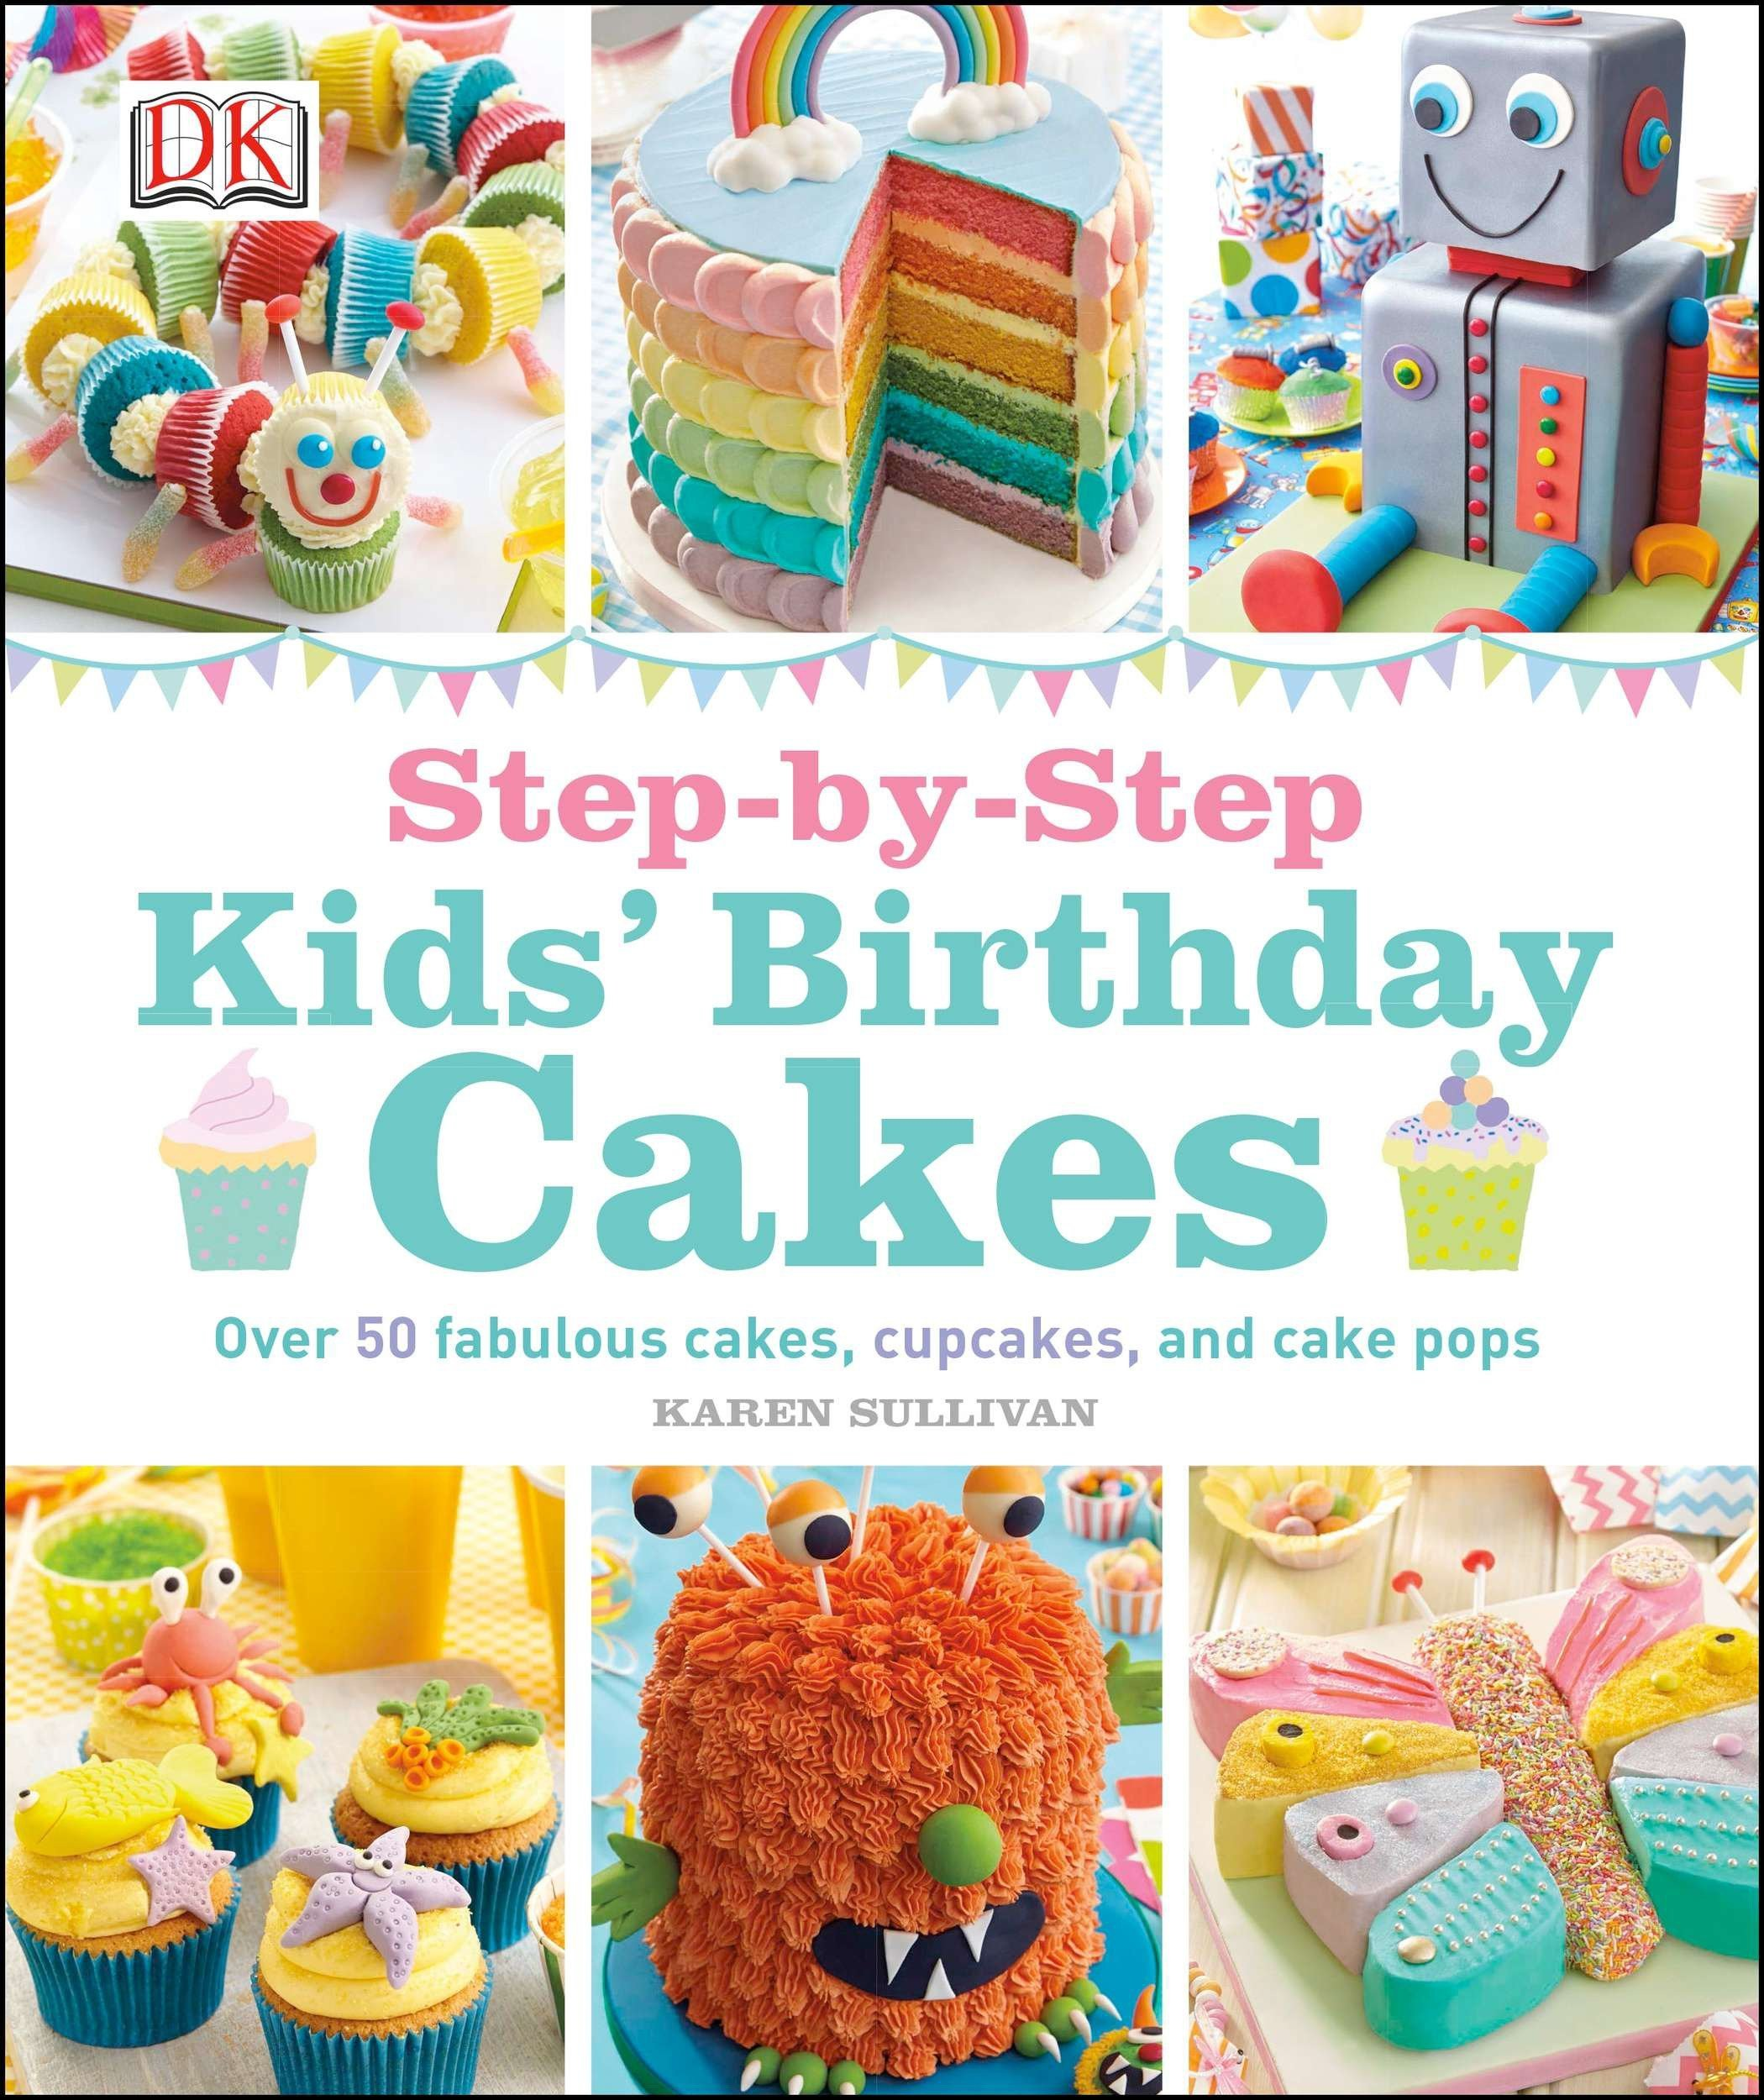 Magnificent Amazon Com Step By Step Kids Birthday Cakes 0790778021023 Dk Birthday Cards Printable Riciscafe Filternl